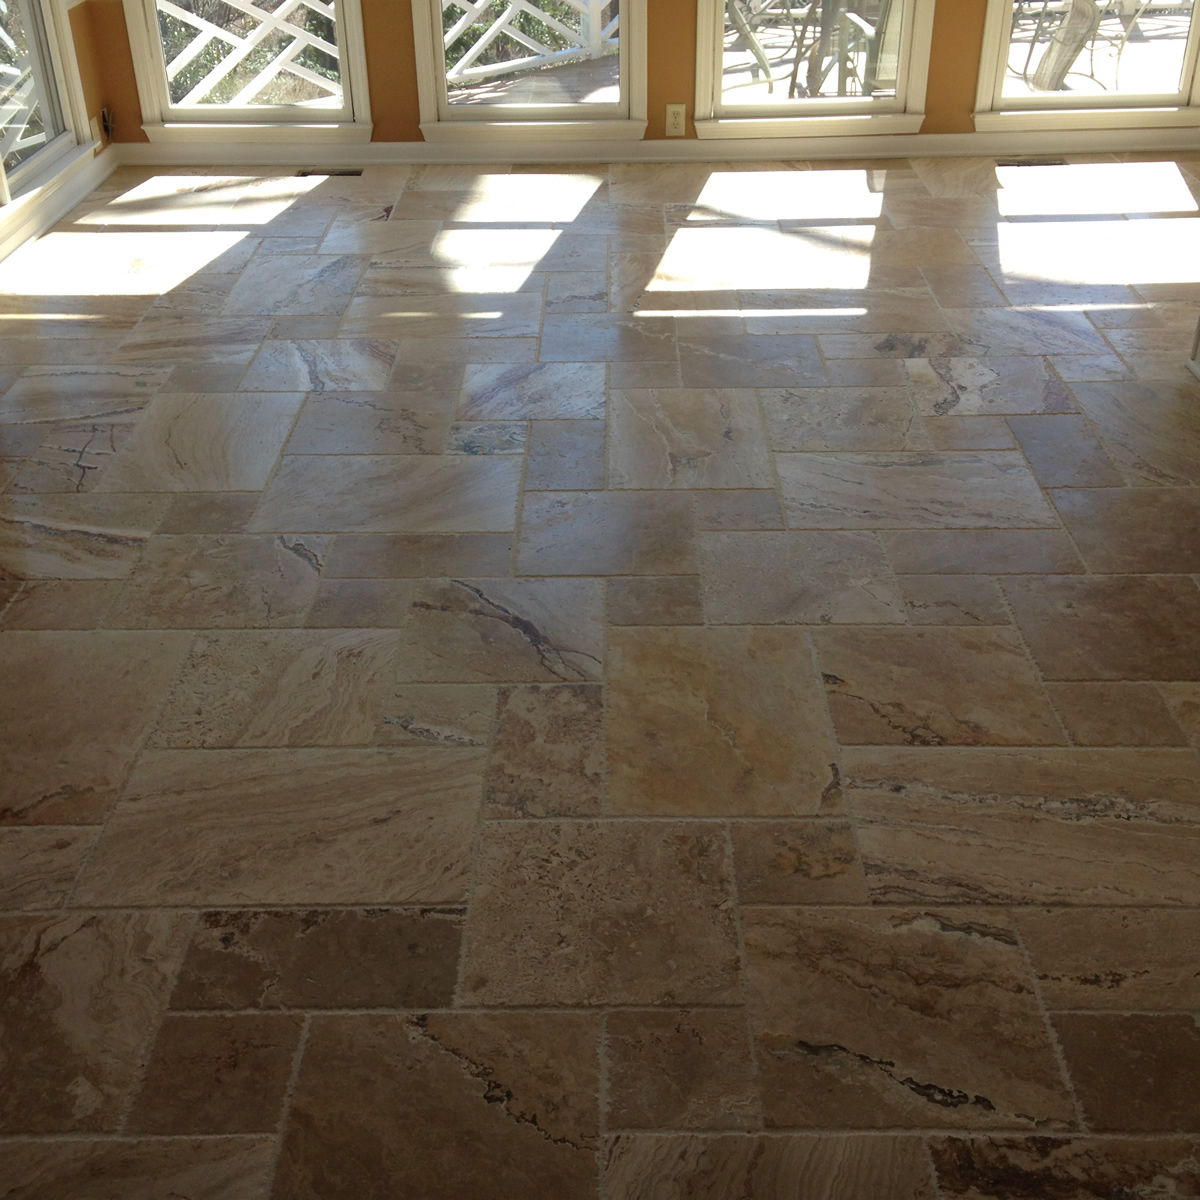 Tile style suwanee ga bathroom remodeling company and tile french pattern custom floor tile installation dailygadgetfo Image collections